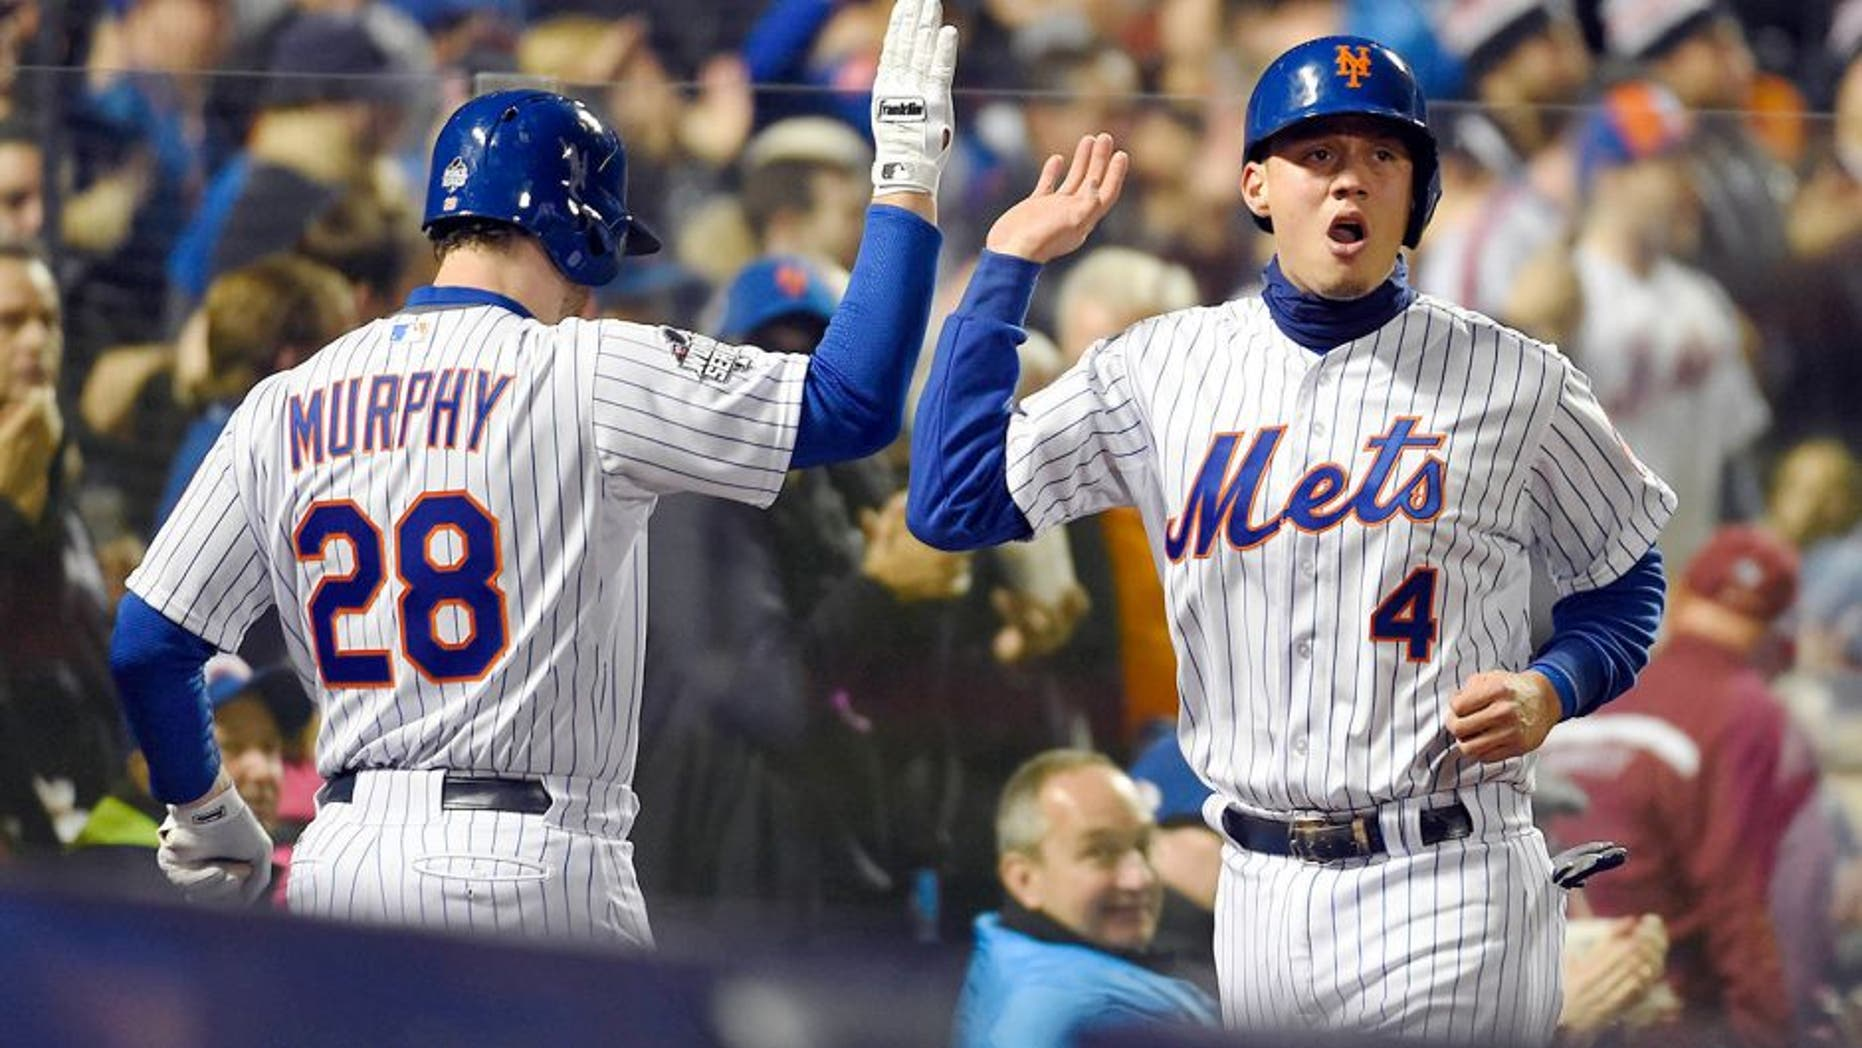 Oct 31, 2015; New York City, NY, USA; New York Mets shortstop Wilmer Flores (4) celebrates with second baseman Daniel Murphy (28) after scoring a run against the Kansas City Royals in the third inning in game four of the World Series at Citi Field. Mandatory Credit: Robert Deutsch-USA TODAY Sports